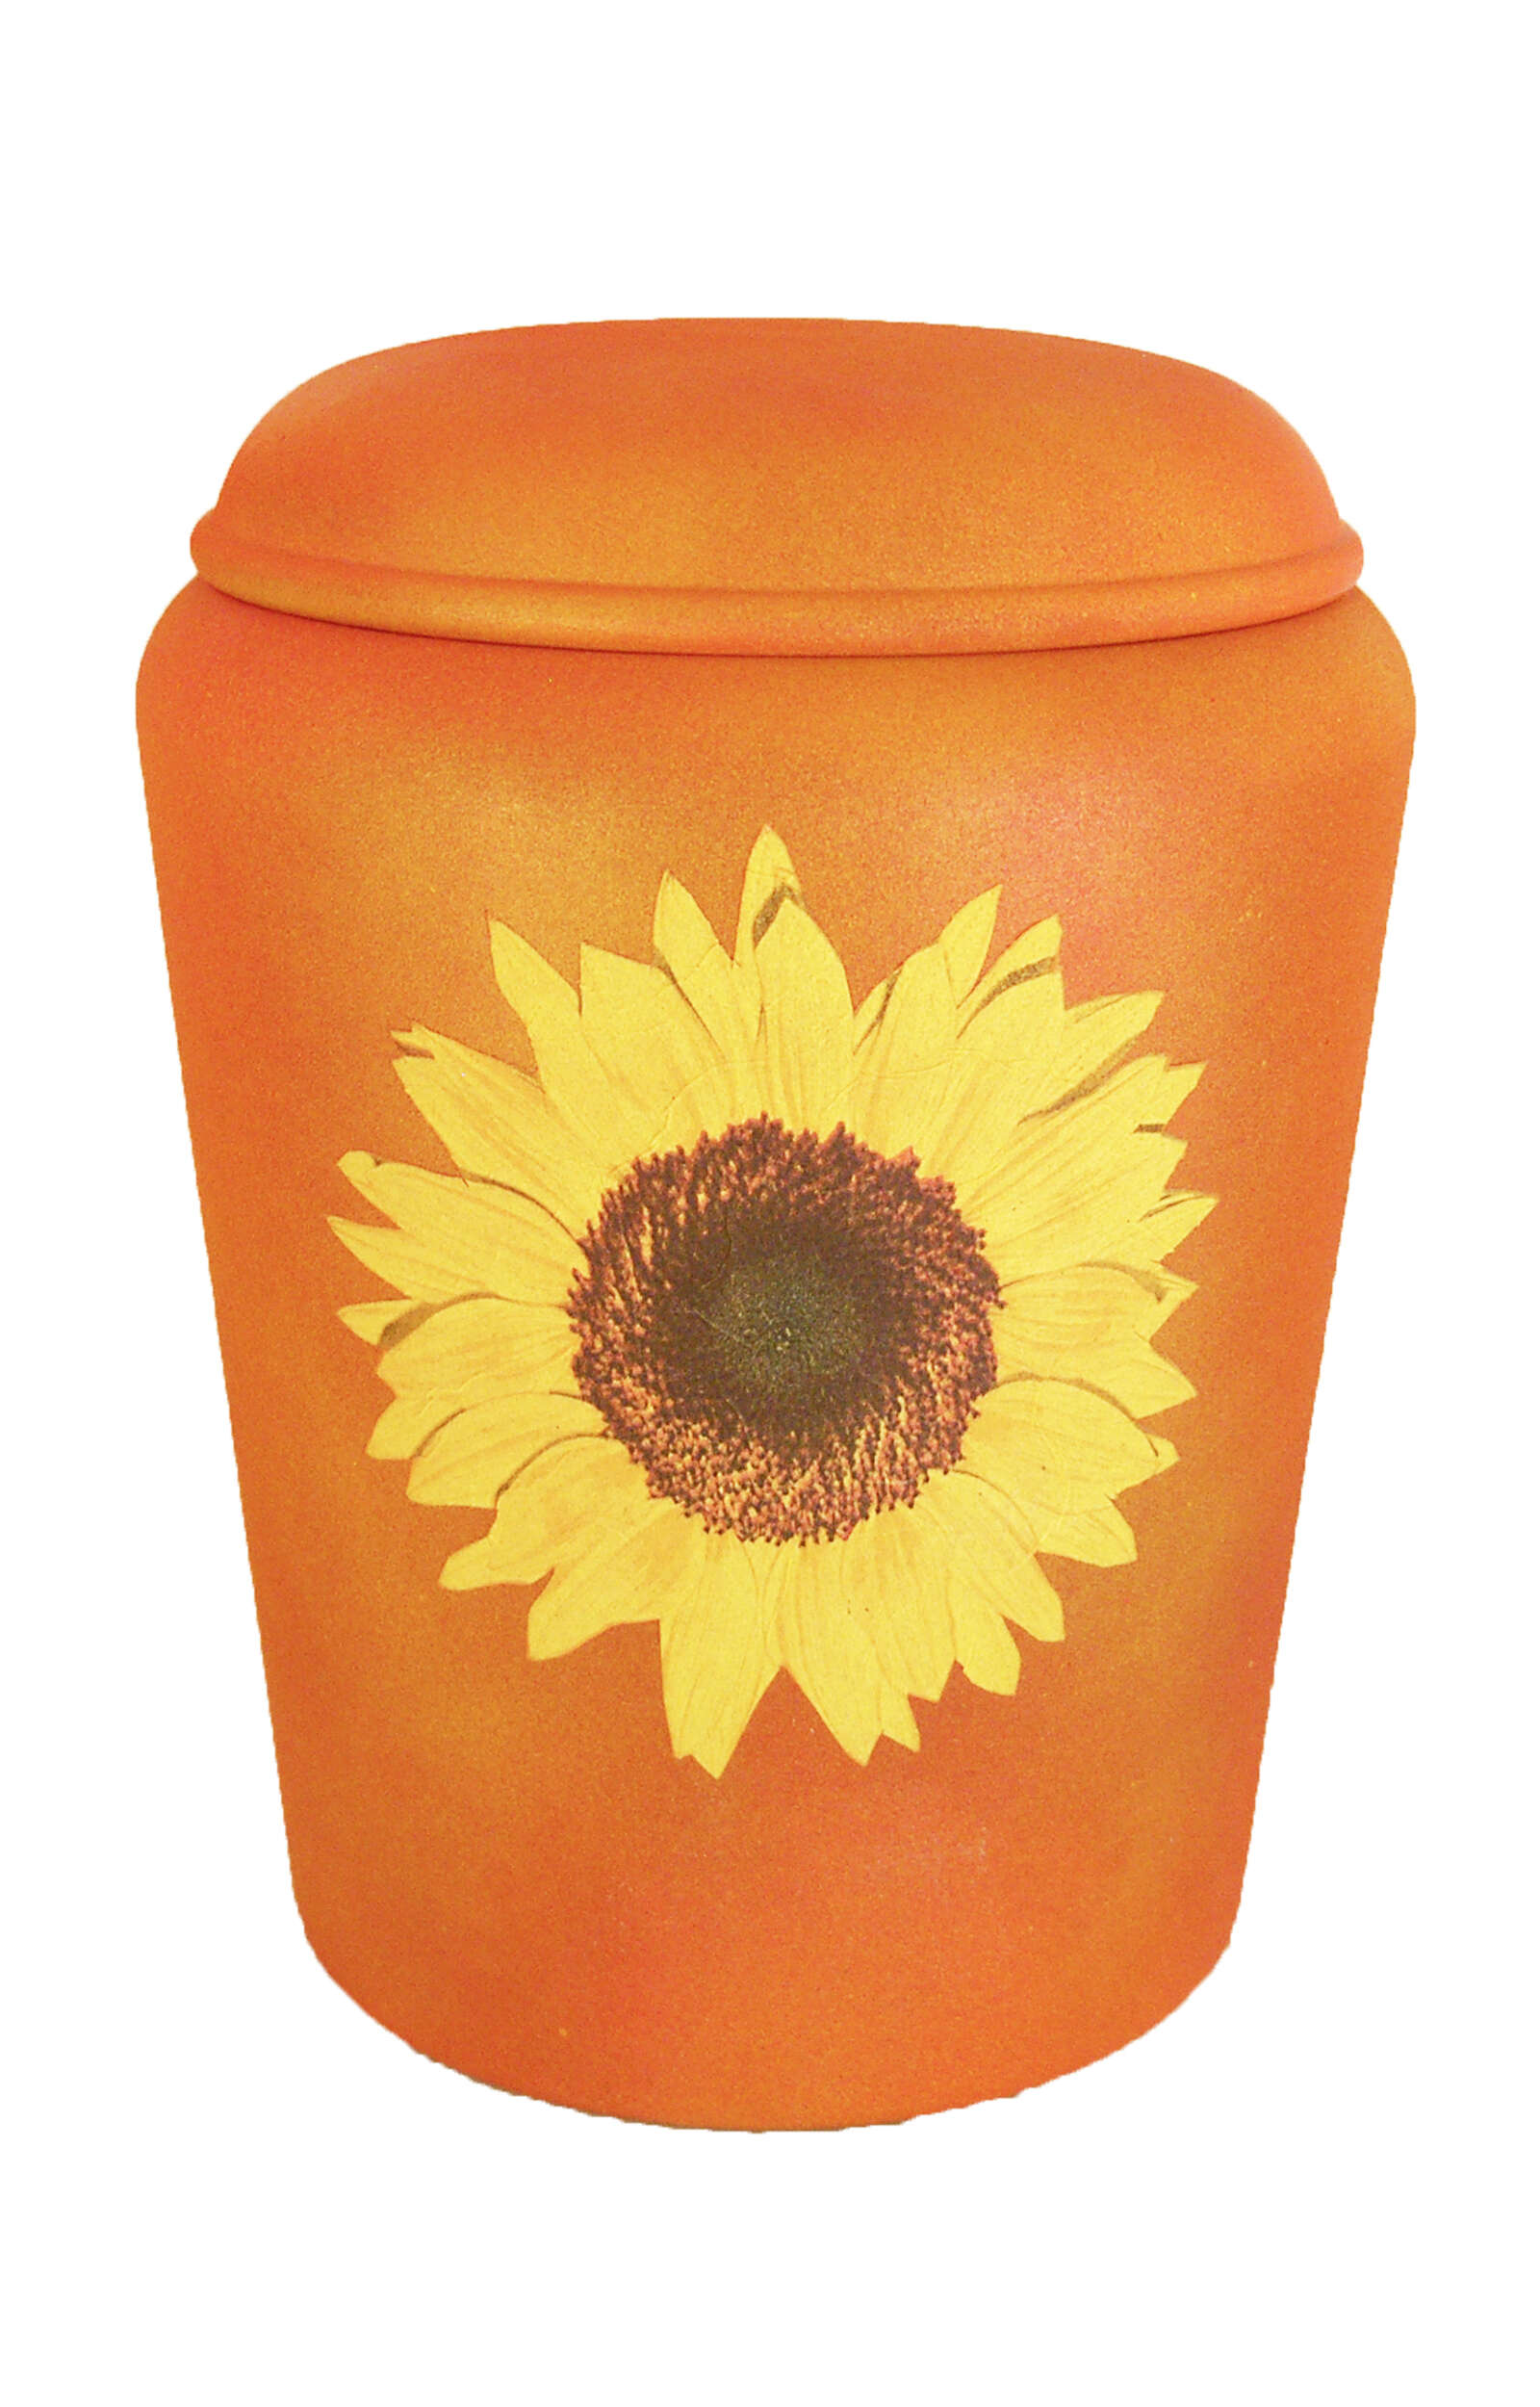 en BOS1728 biodigradable urn sunflower yellow orange Nona Mela funeral urn for human ashes